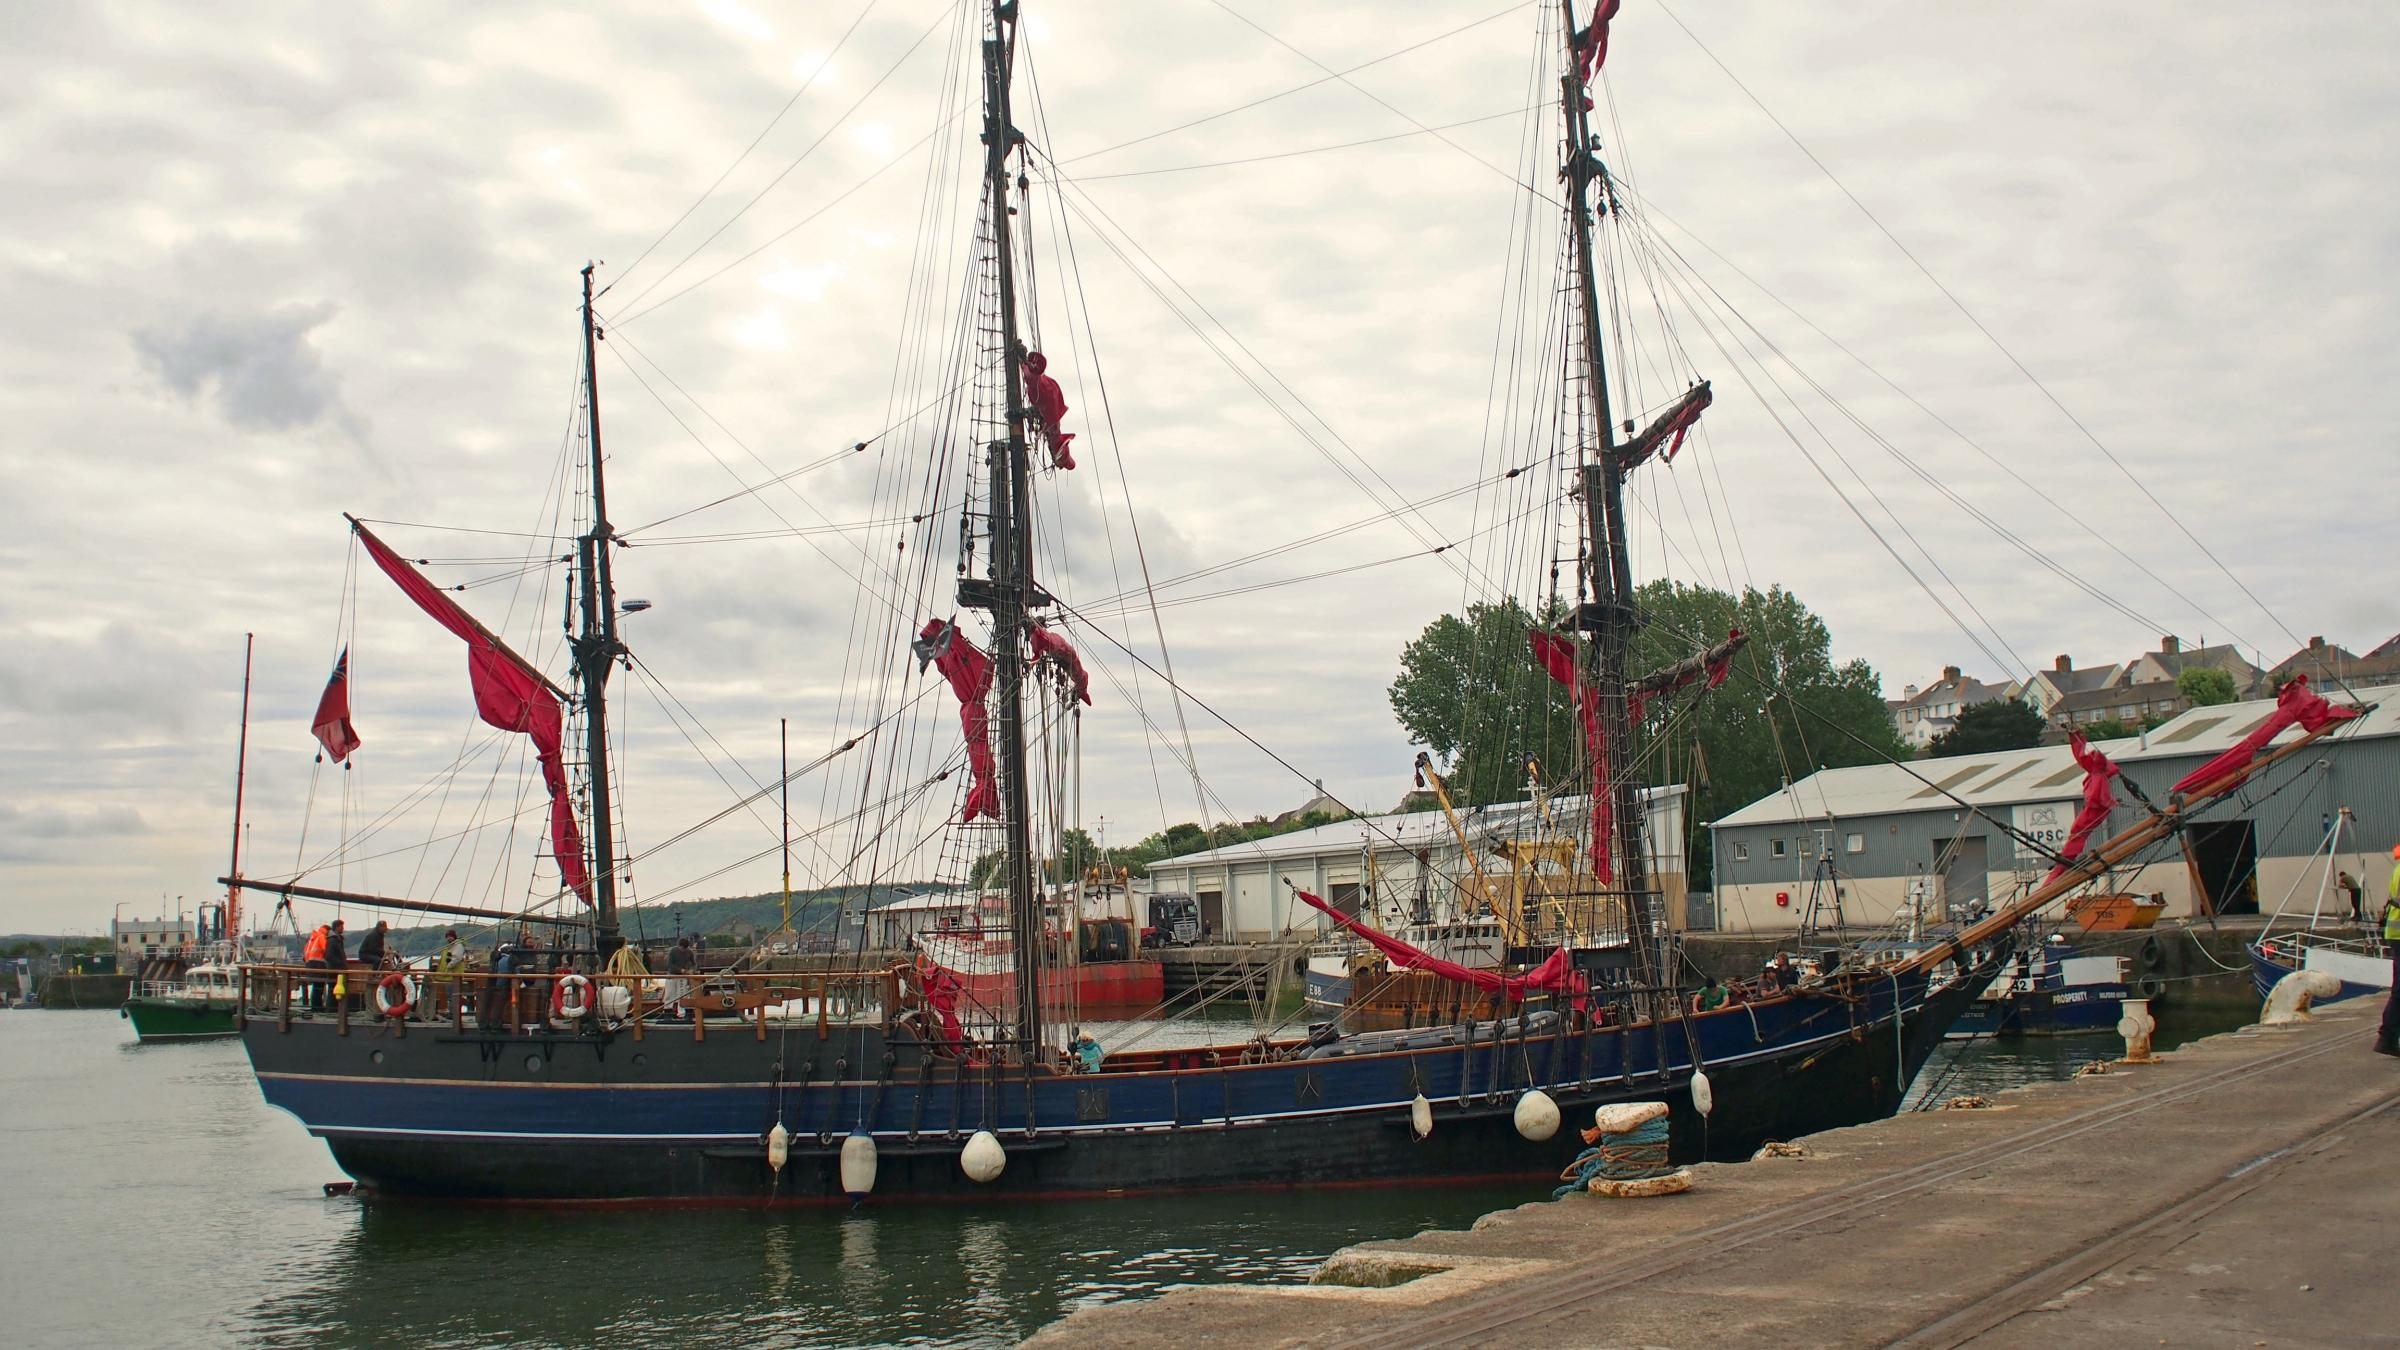 Movie tall ship sails into Haven for festival